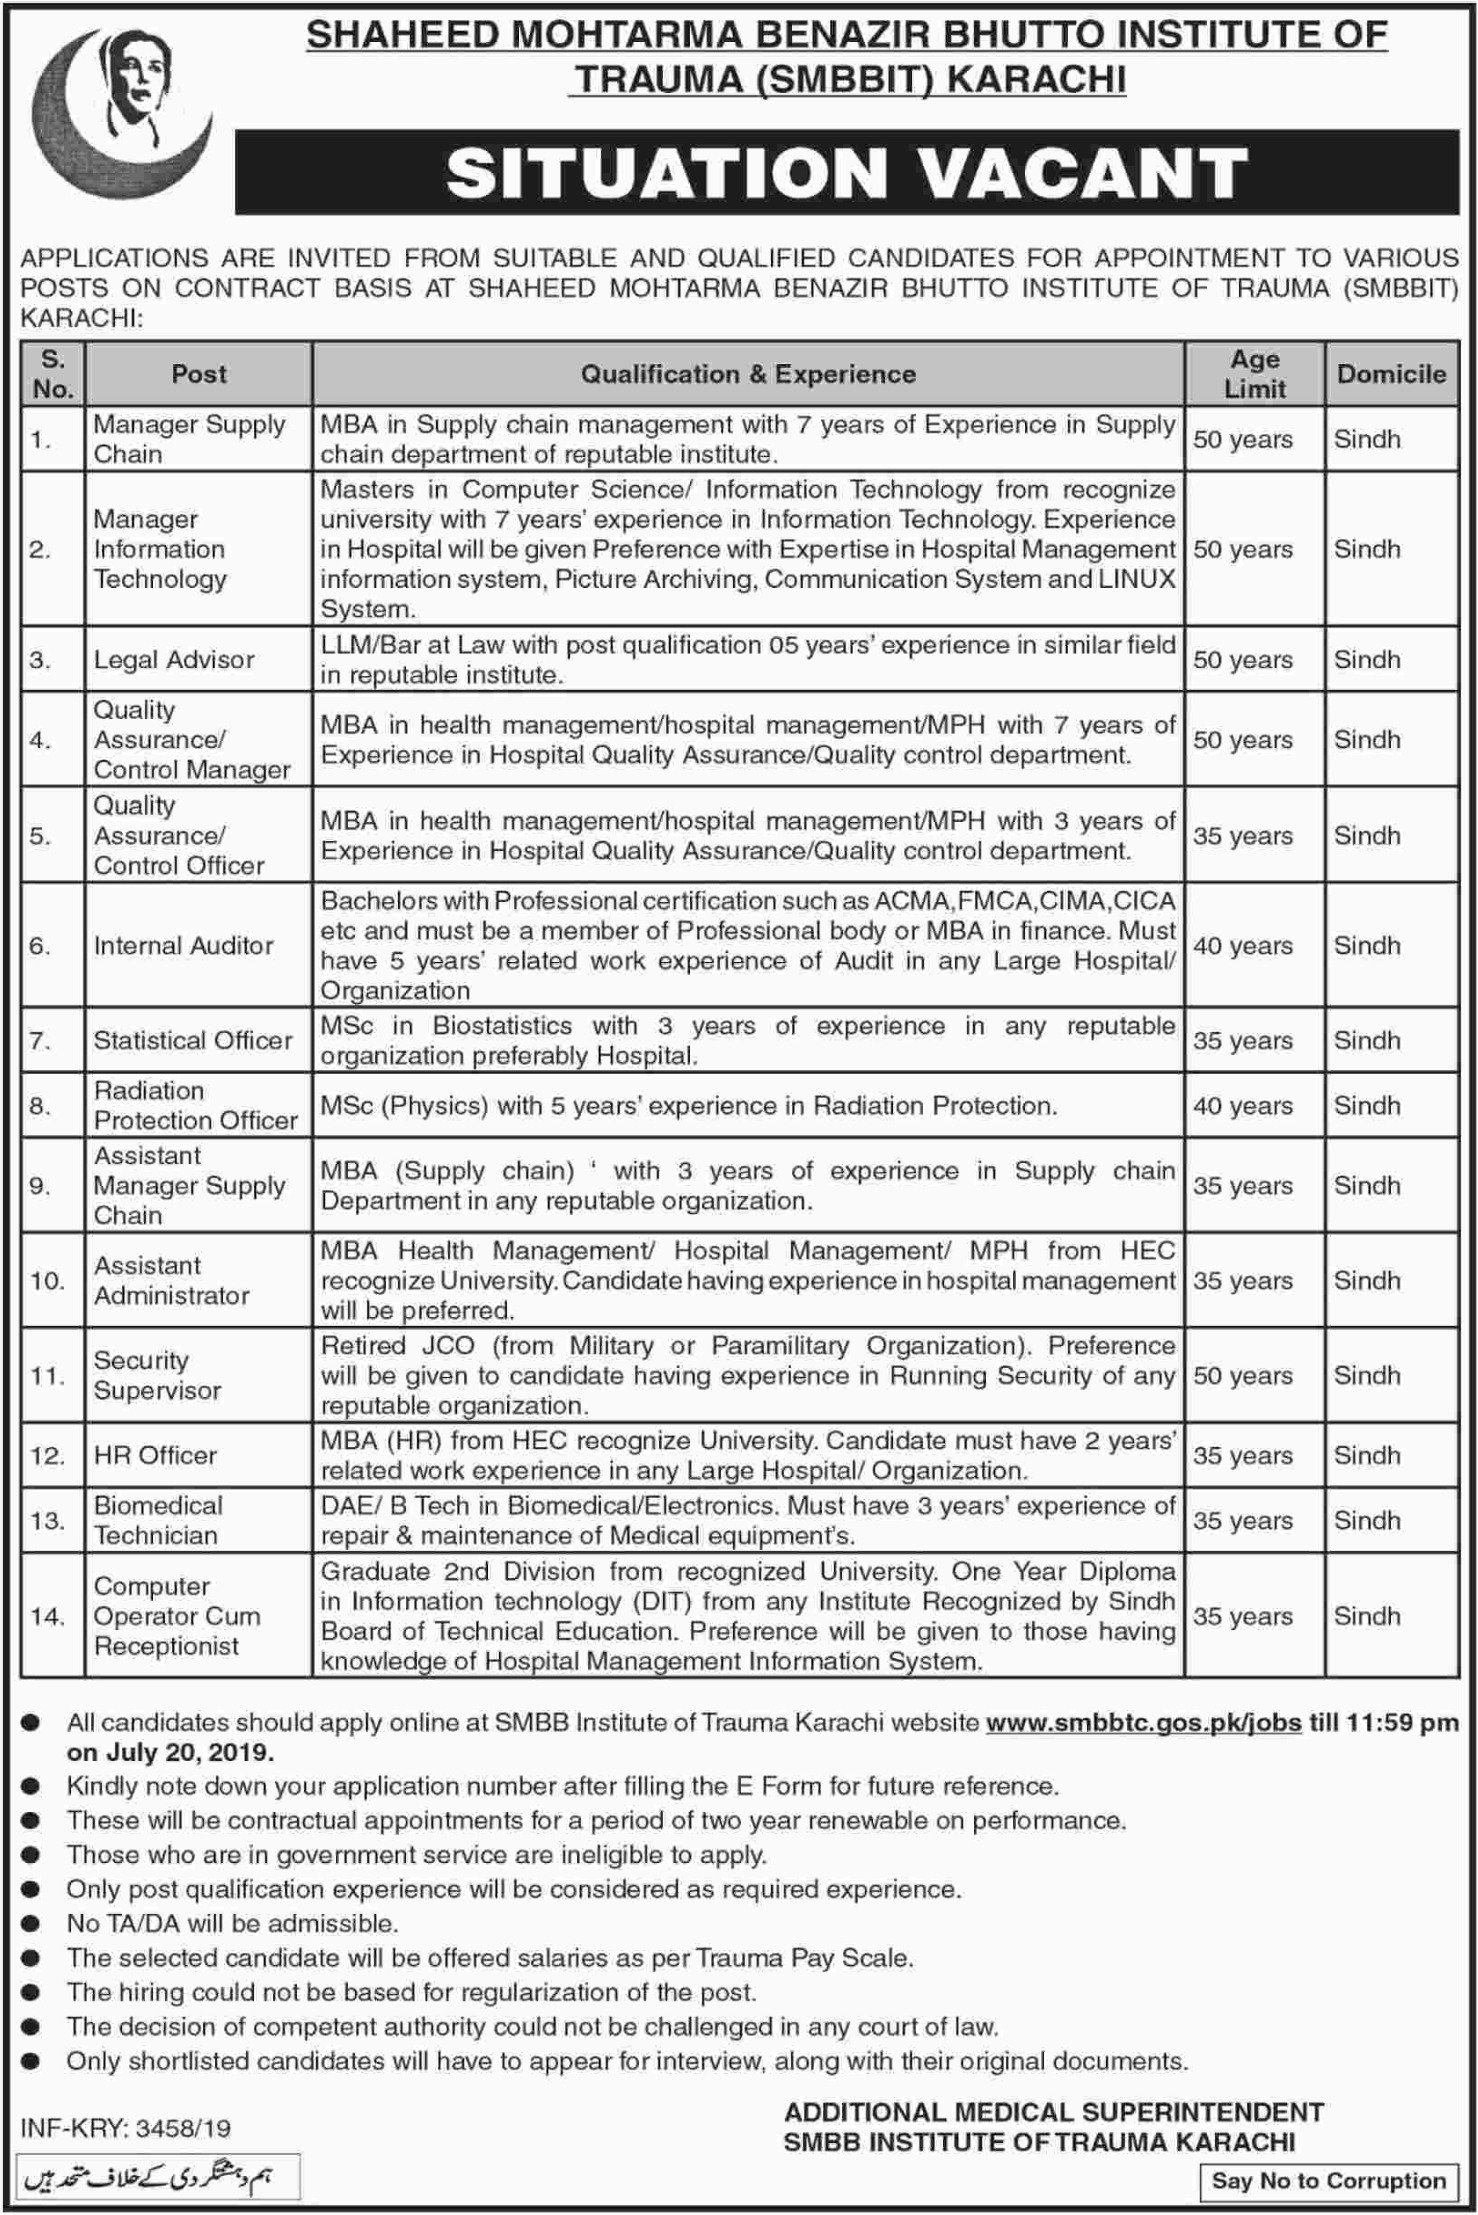 Shaheed Mohtarma Benazir Bhutto Institute of Trauma SMBBIT Karachi Jobs 2019 Sindh